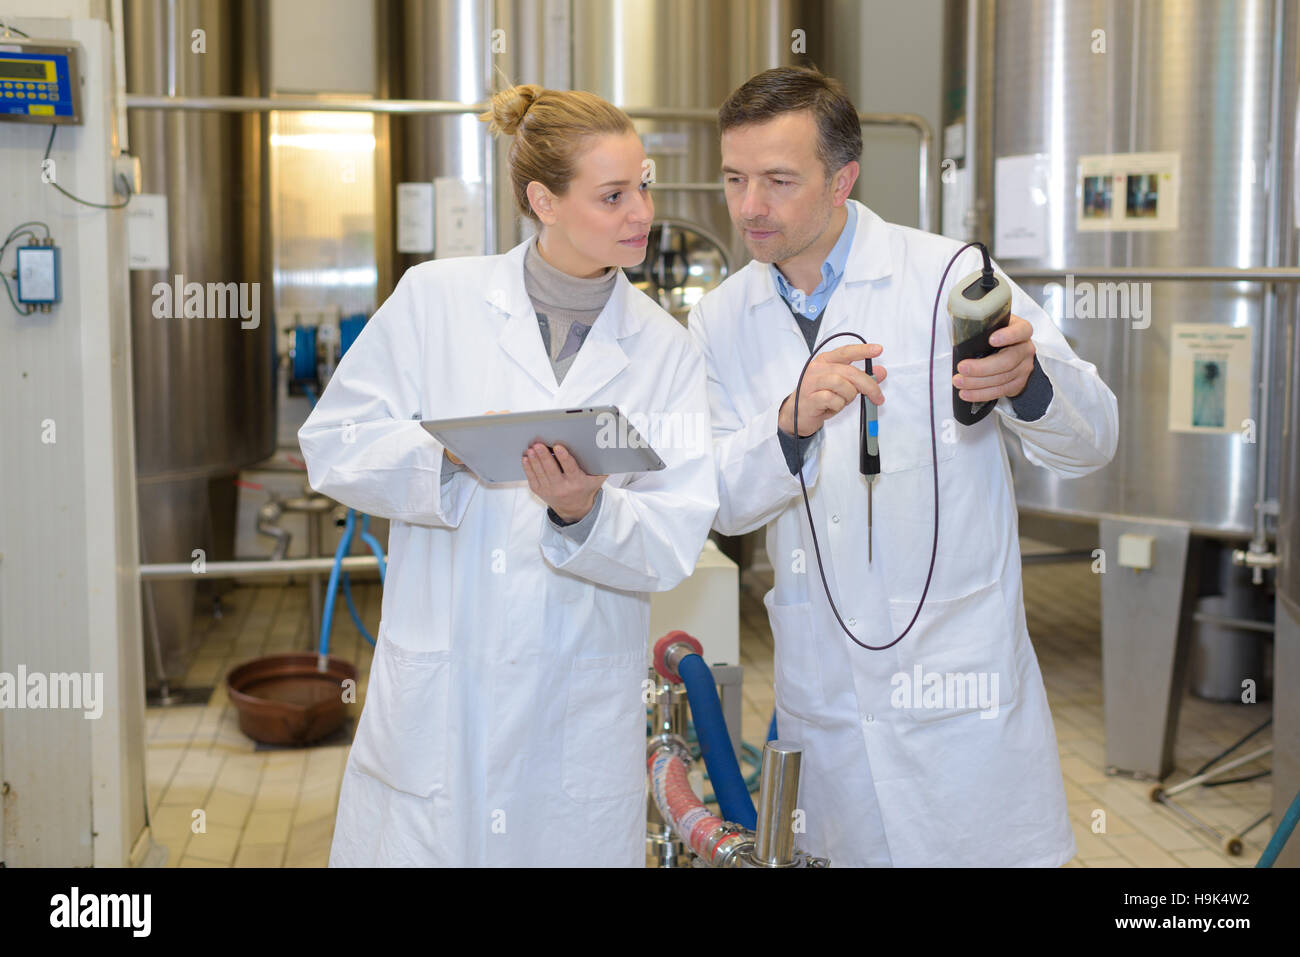 People next to vats holding tablet and probe - Stock Image